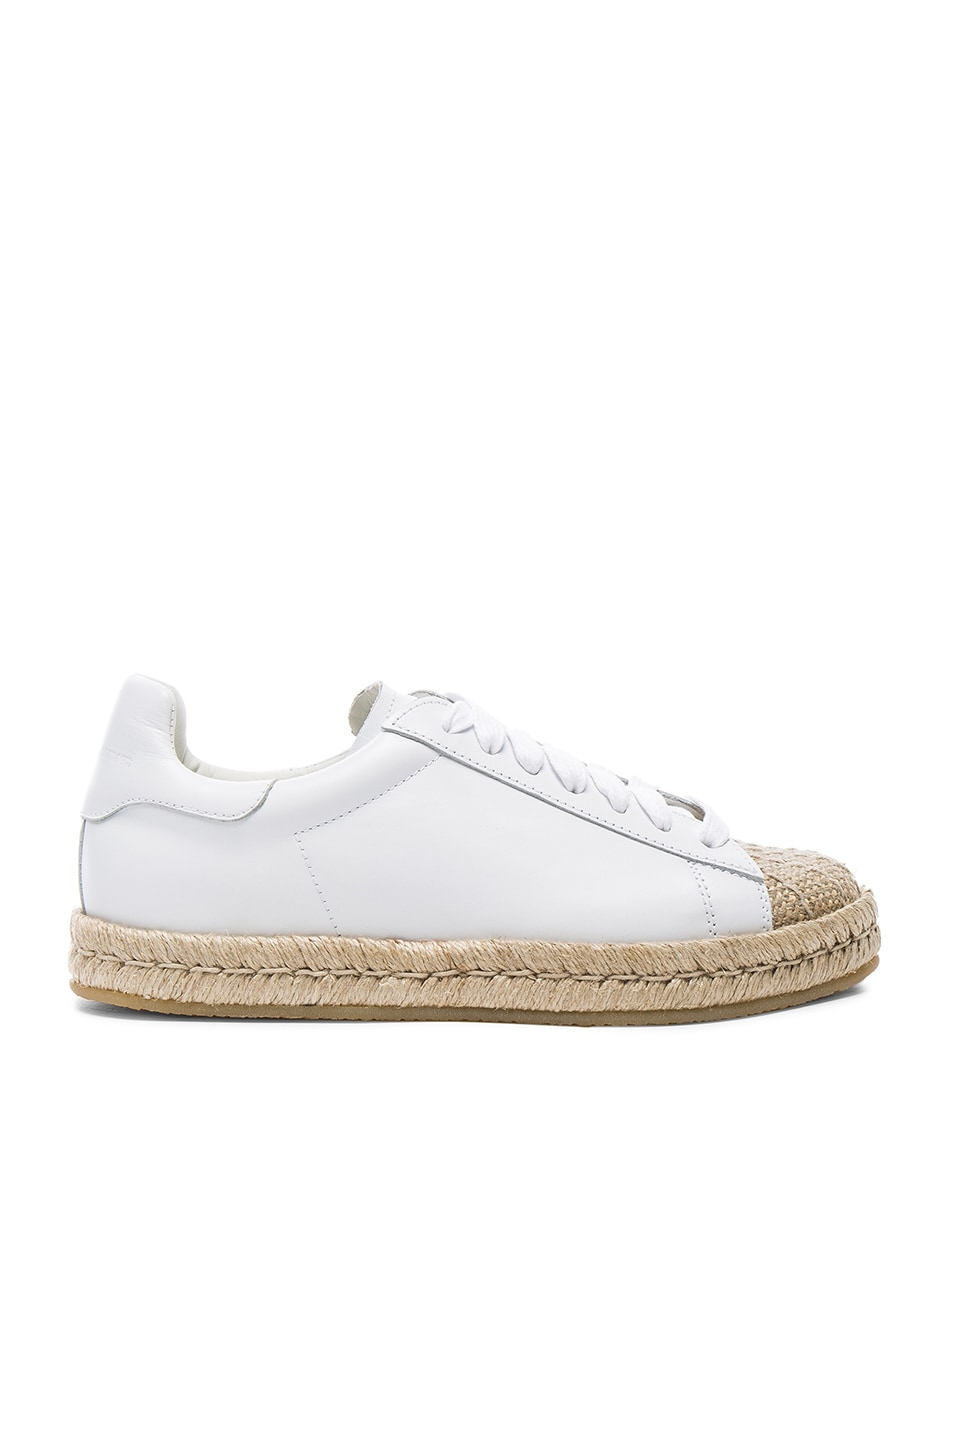 Image 1 of Alexander Wang Leather Rian Espadrilles in Optic White